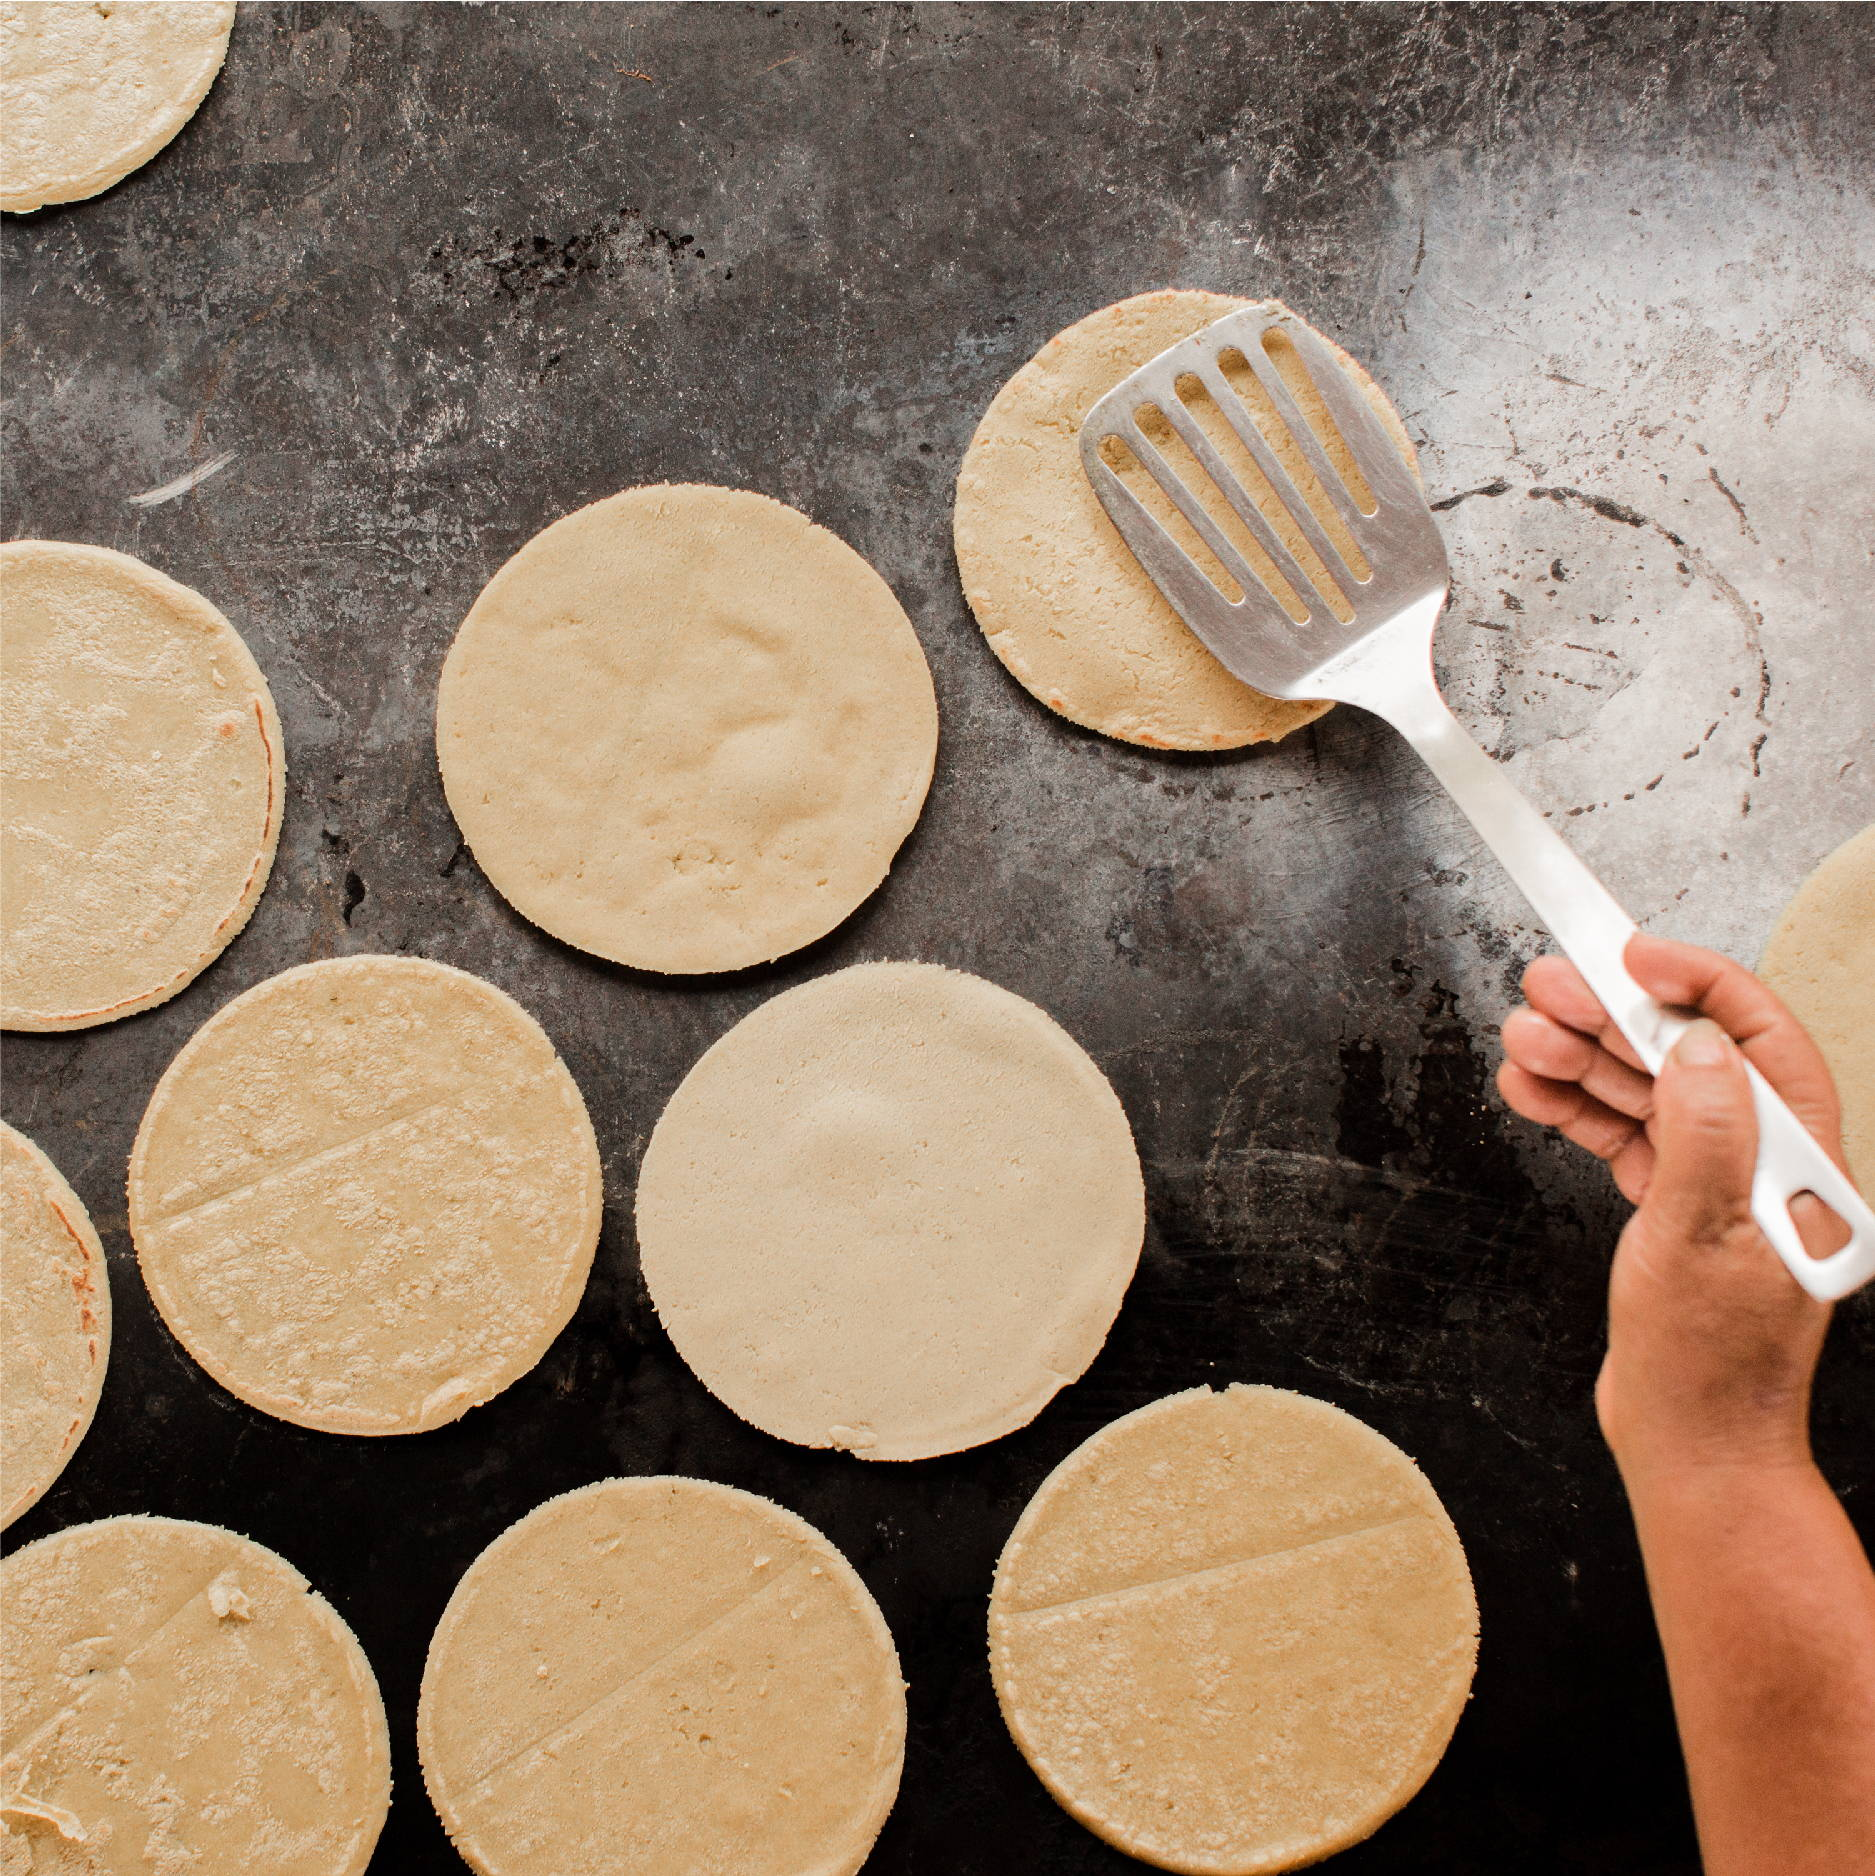 Fresh corn tortillas are cooked on a wood-fired cast iron skillet and being flipped by a spatula.